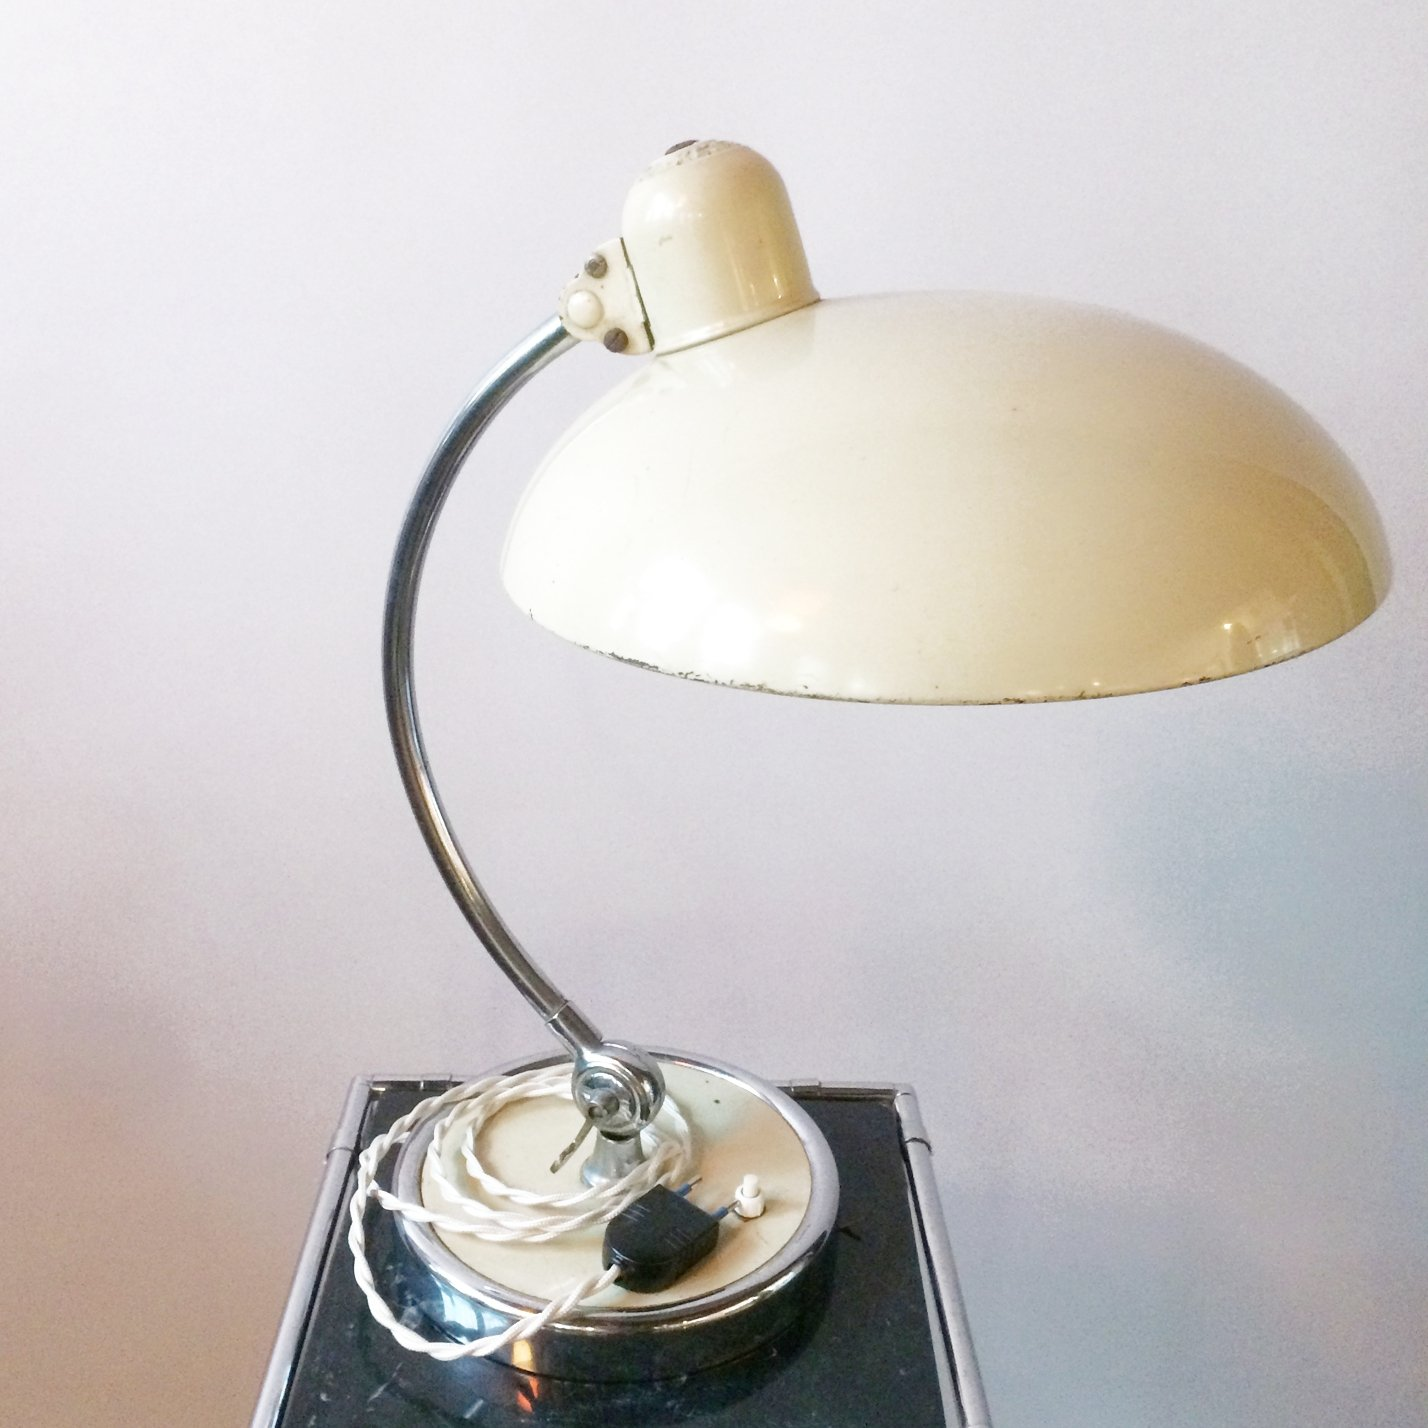 Leuchten Kaiser President 663 Desk Lamp By Christian Dell For Kaiser Leuchten, 1940s | #94490